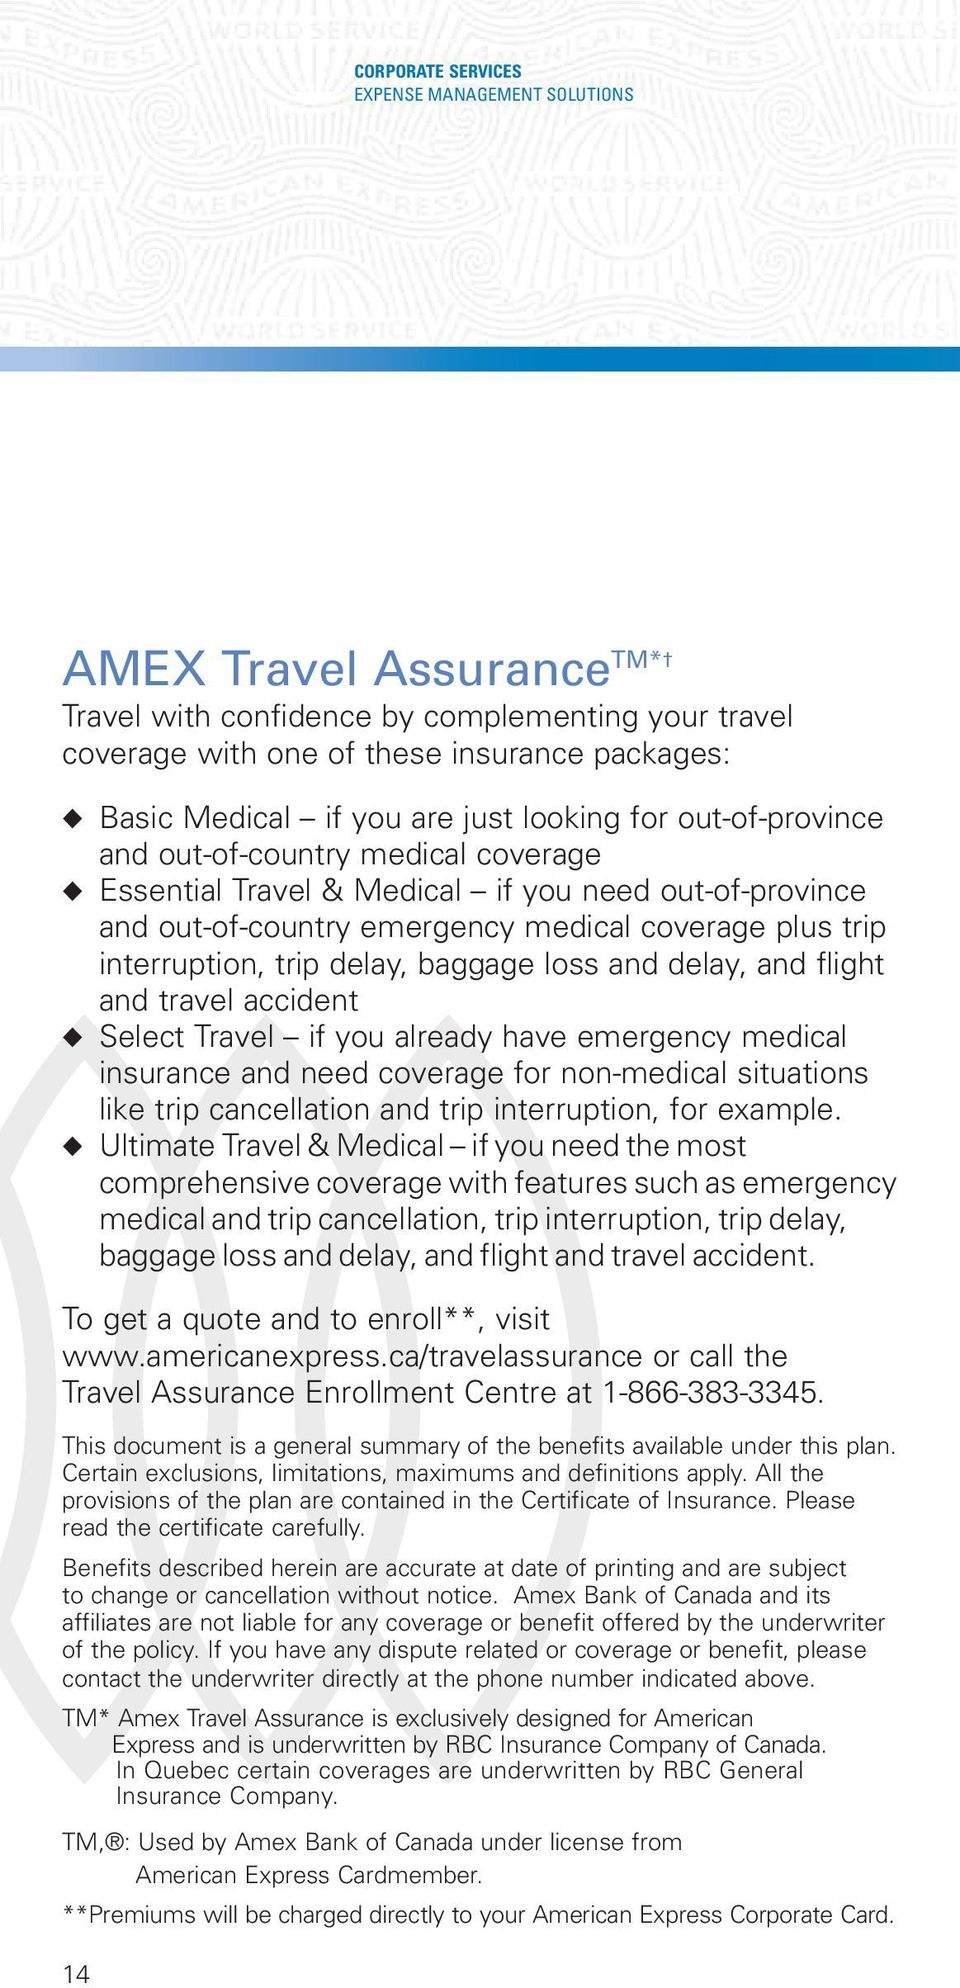 delay, baggage loss and delay, and flight and travel accident Select Travel if you already have emergency medical insurance and need coverage for non-medical situations like trip cancellation and